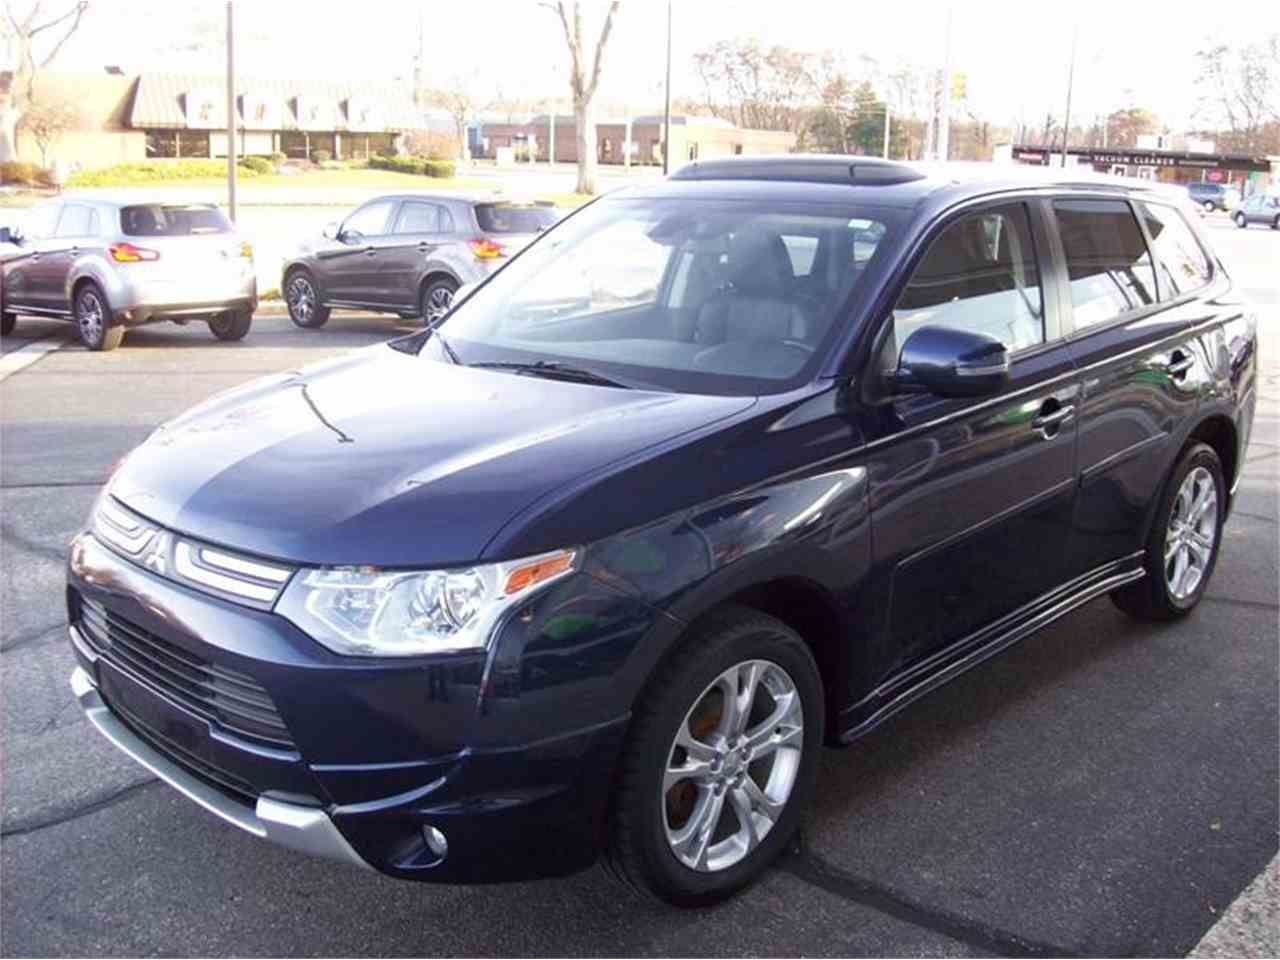 Large Picture of '14 Mitsubishi Outlander - $17,495.00 - MB5J